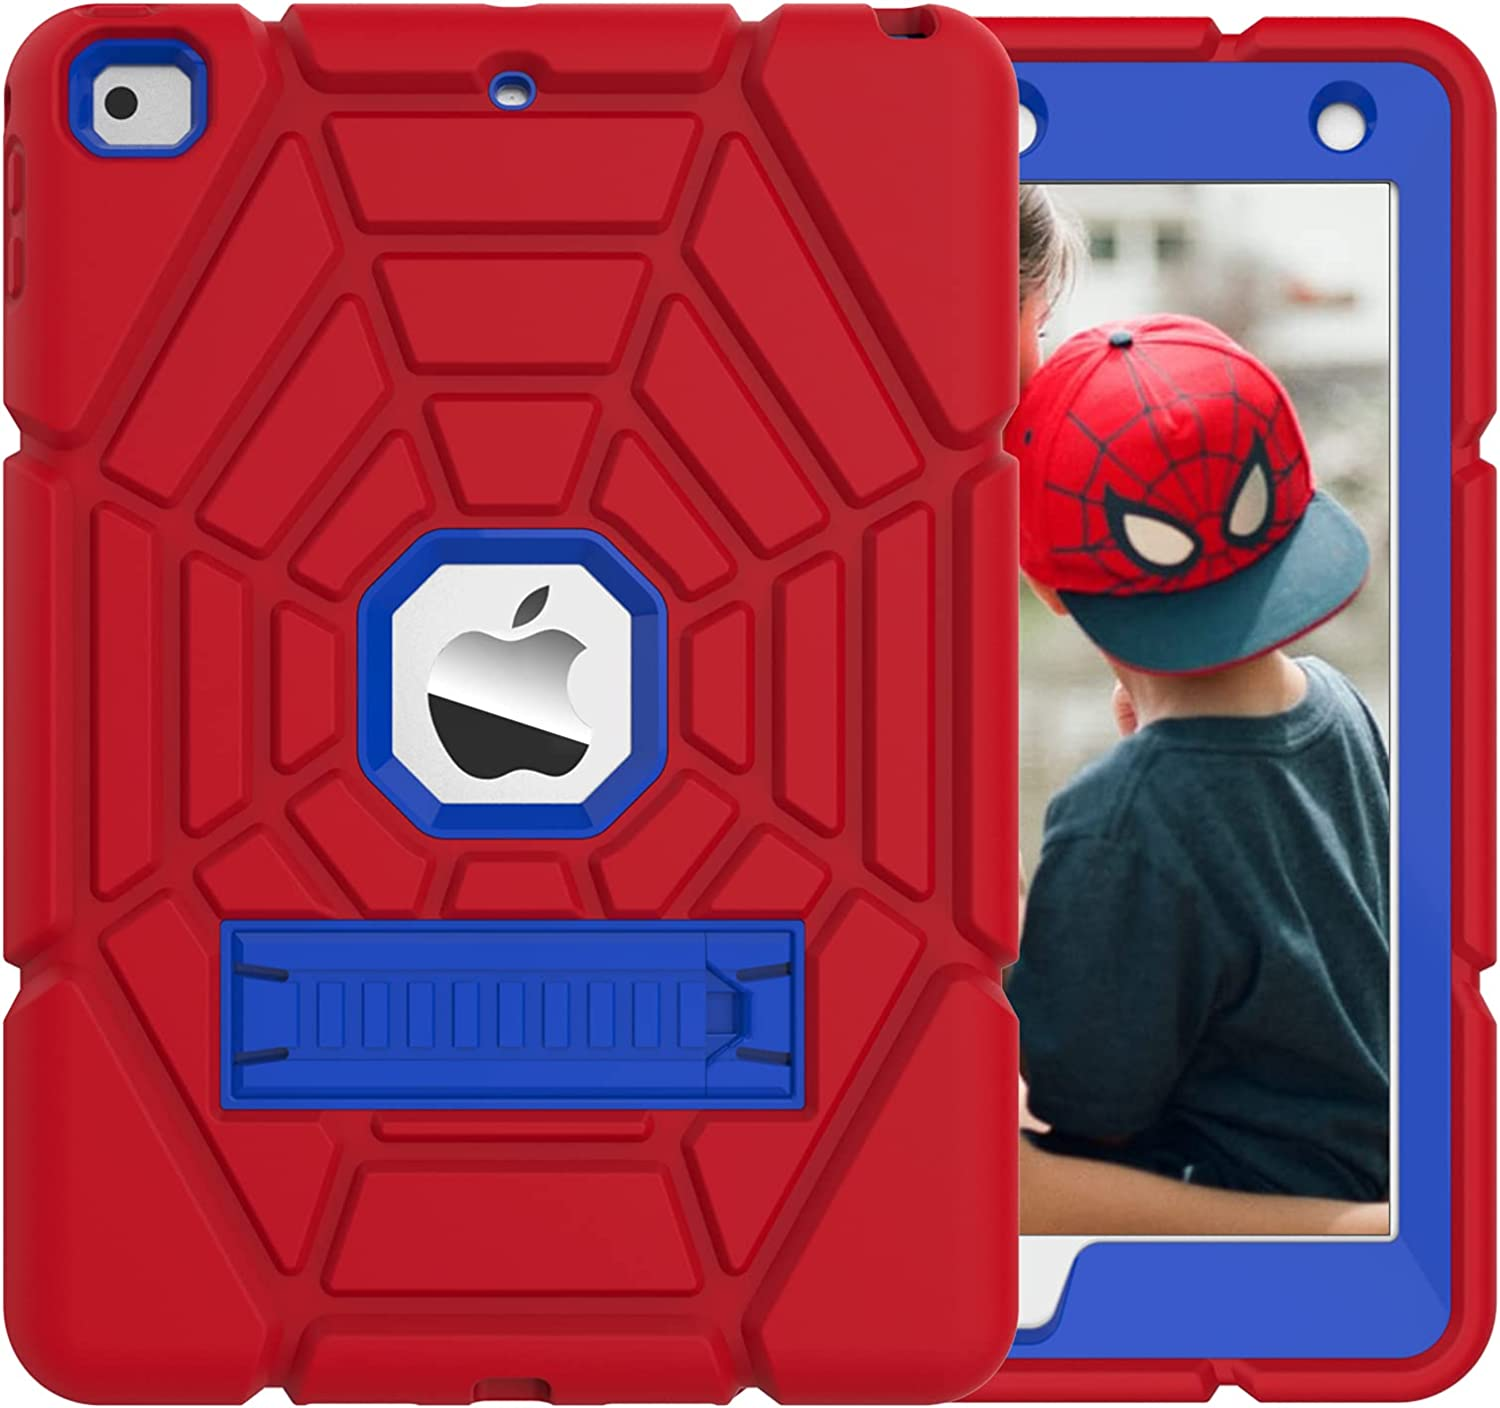 Grifobes iPad Mini Case 5th Generation,iPad Mini 5 Case for Kids,Heavy Duty Protective Shockproof Rugged Case Cover with Kickstand,High Impact Full Body Protective Cover for iPad Mini 5/4 -Red+Blue